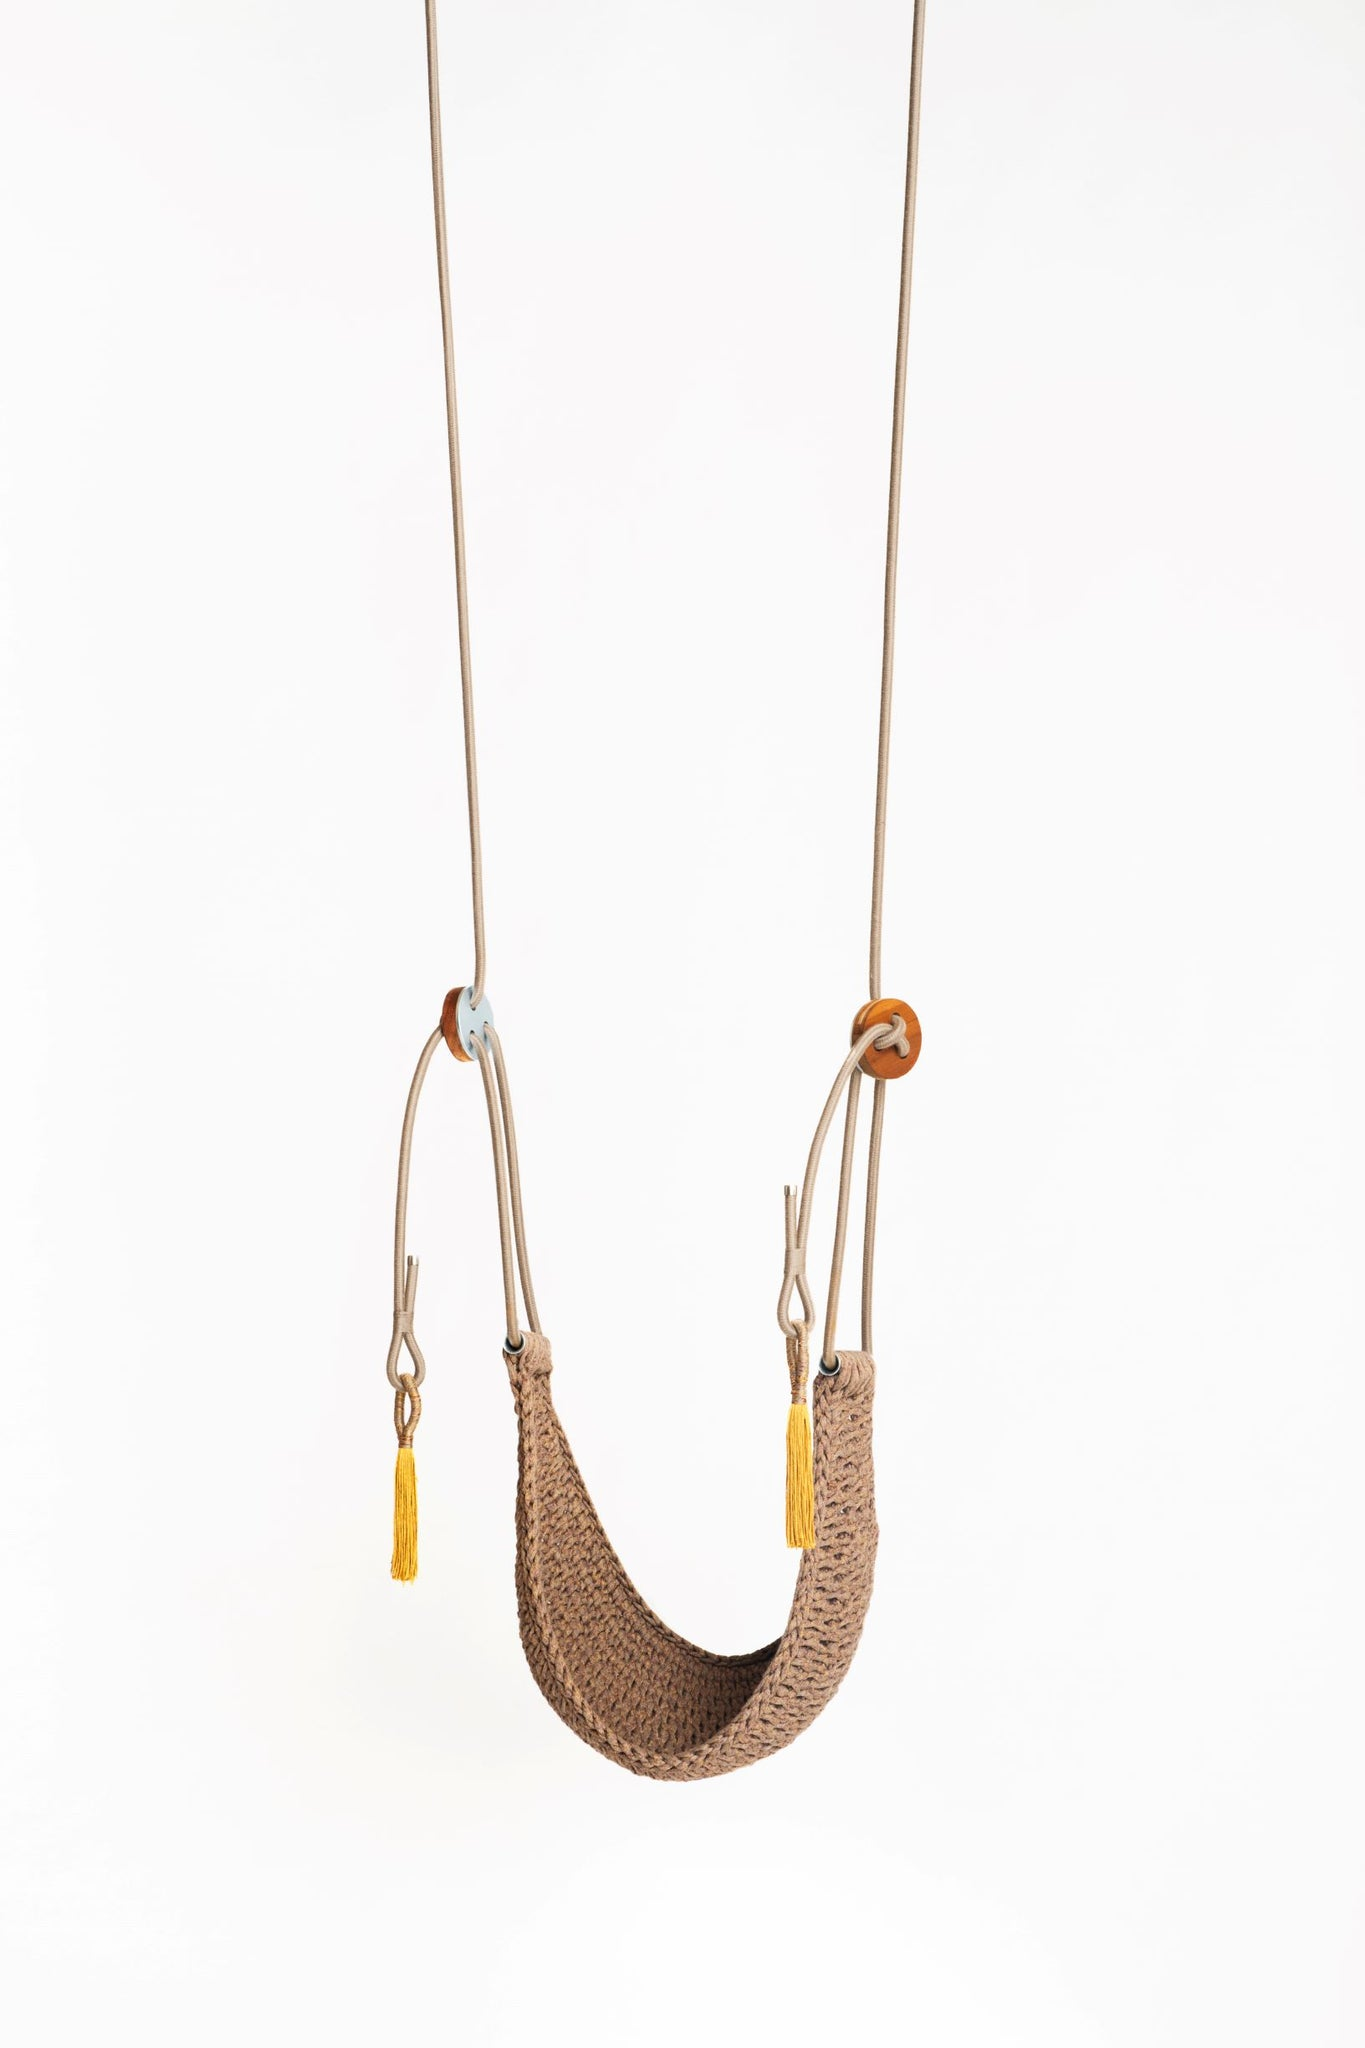 Ginger Outdoor Saddle Swing